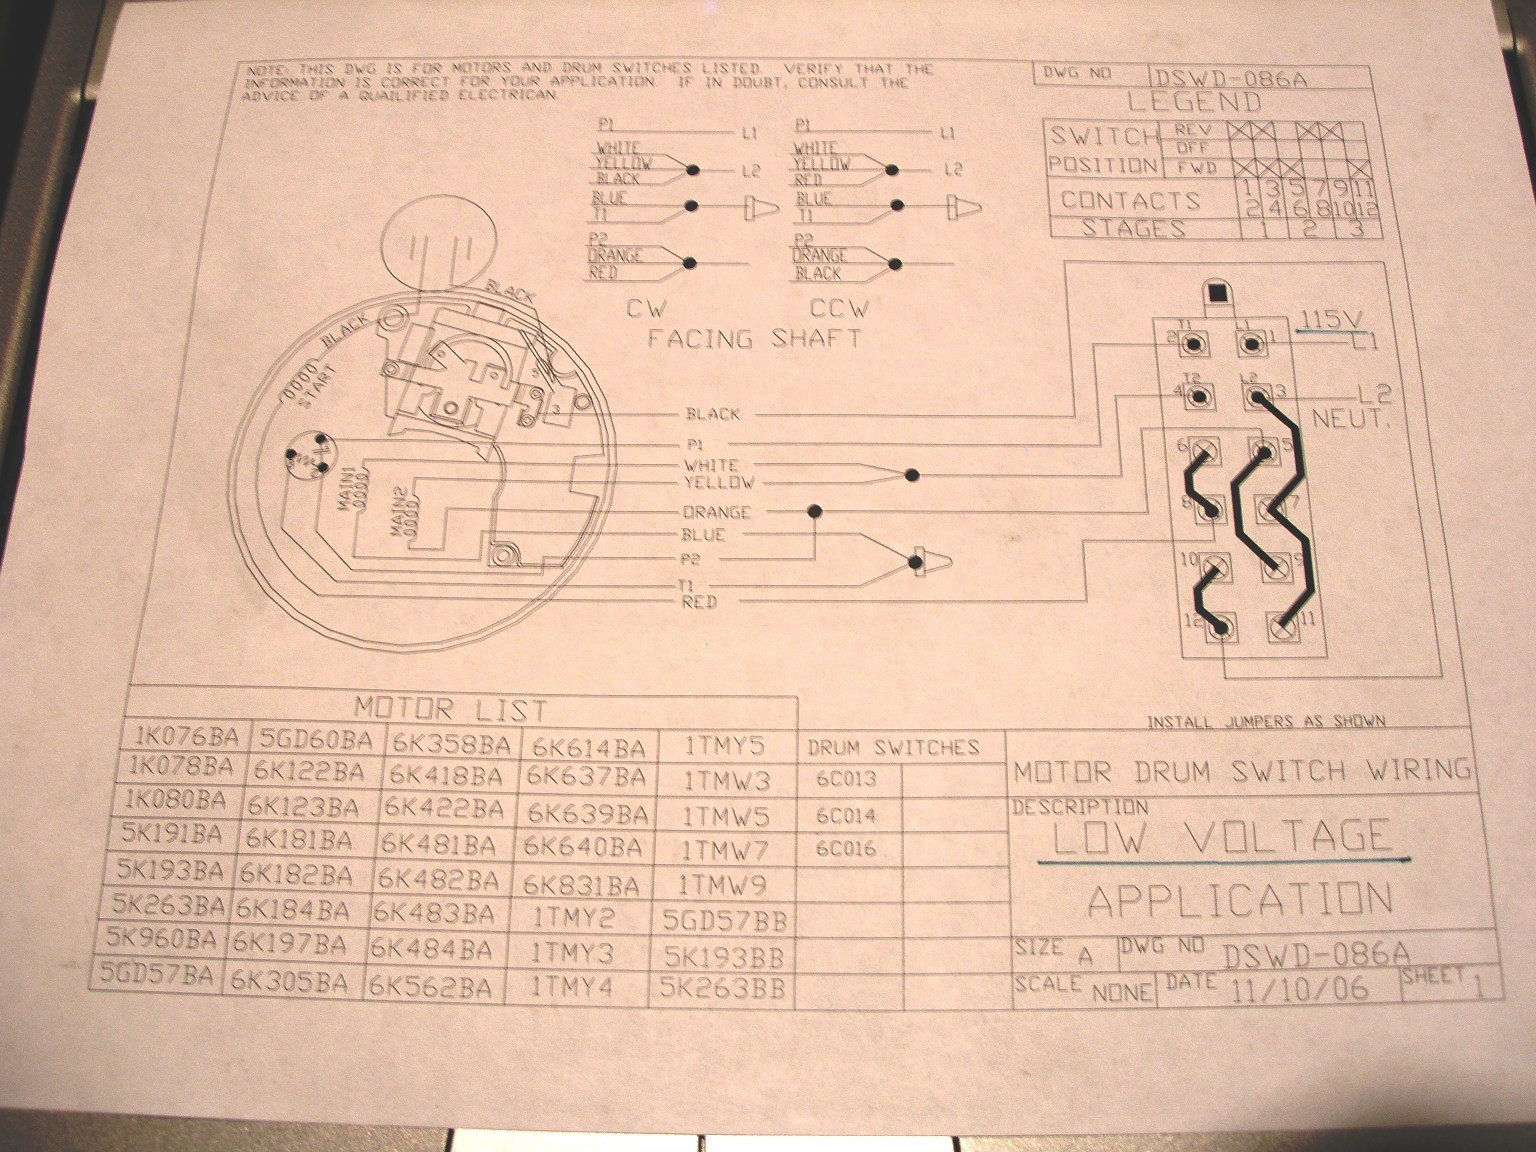 Century Boat Wiring Diagram - 2002 Ford Econoline Van Club Wagon Wiring  Diagram Manual Original for Wiring Diagram SchematicsWiring Diagram Schematics